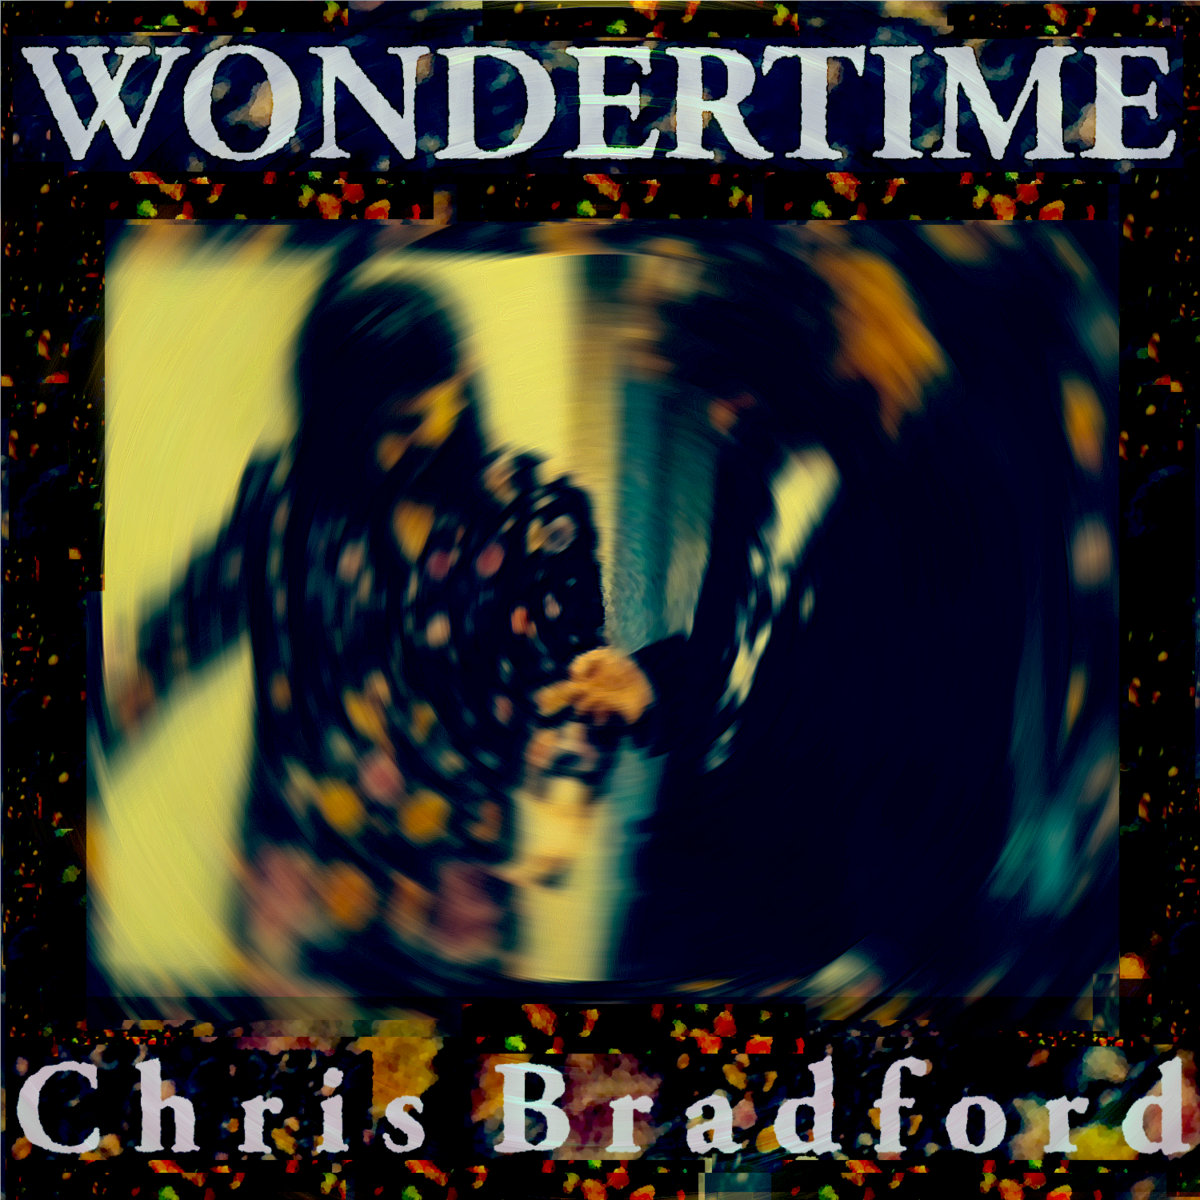 https://chrisbradford.bandcamp.com/track/wondertime-single